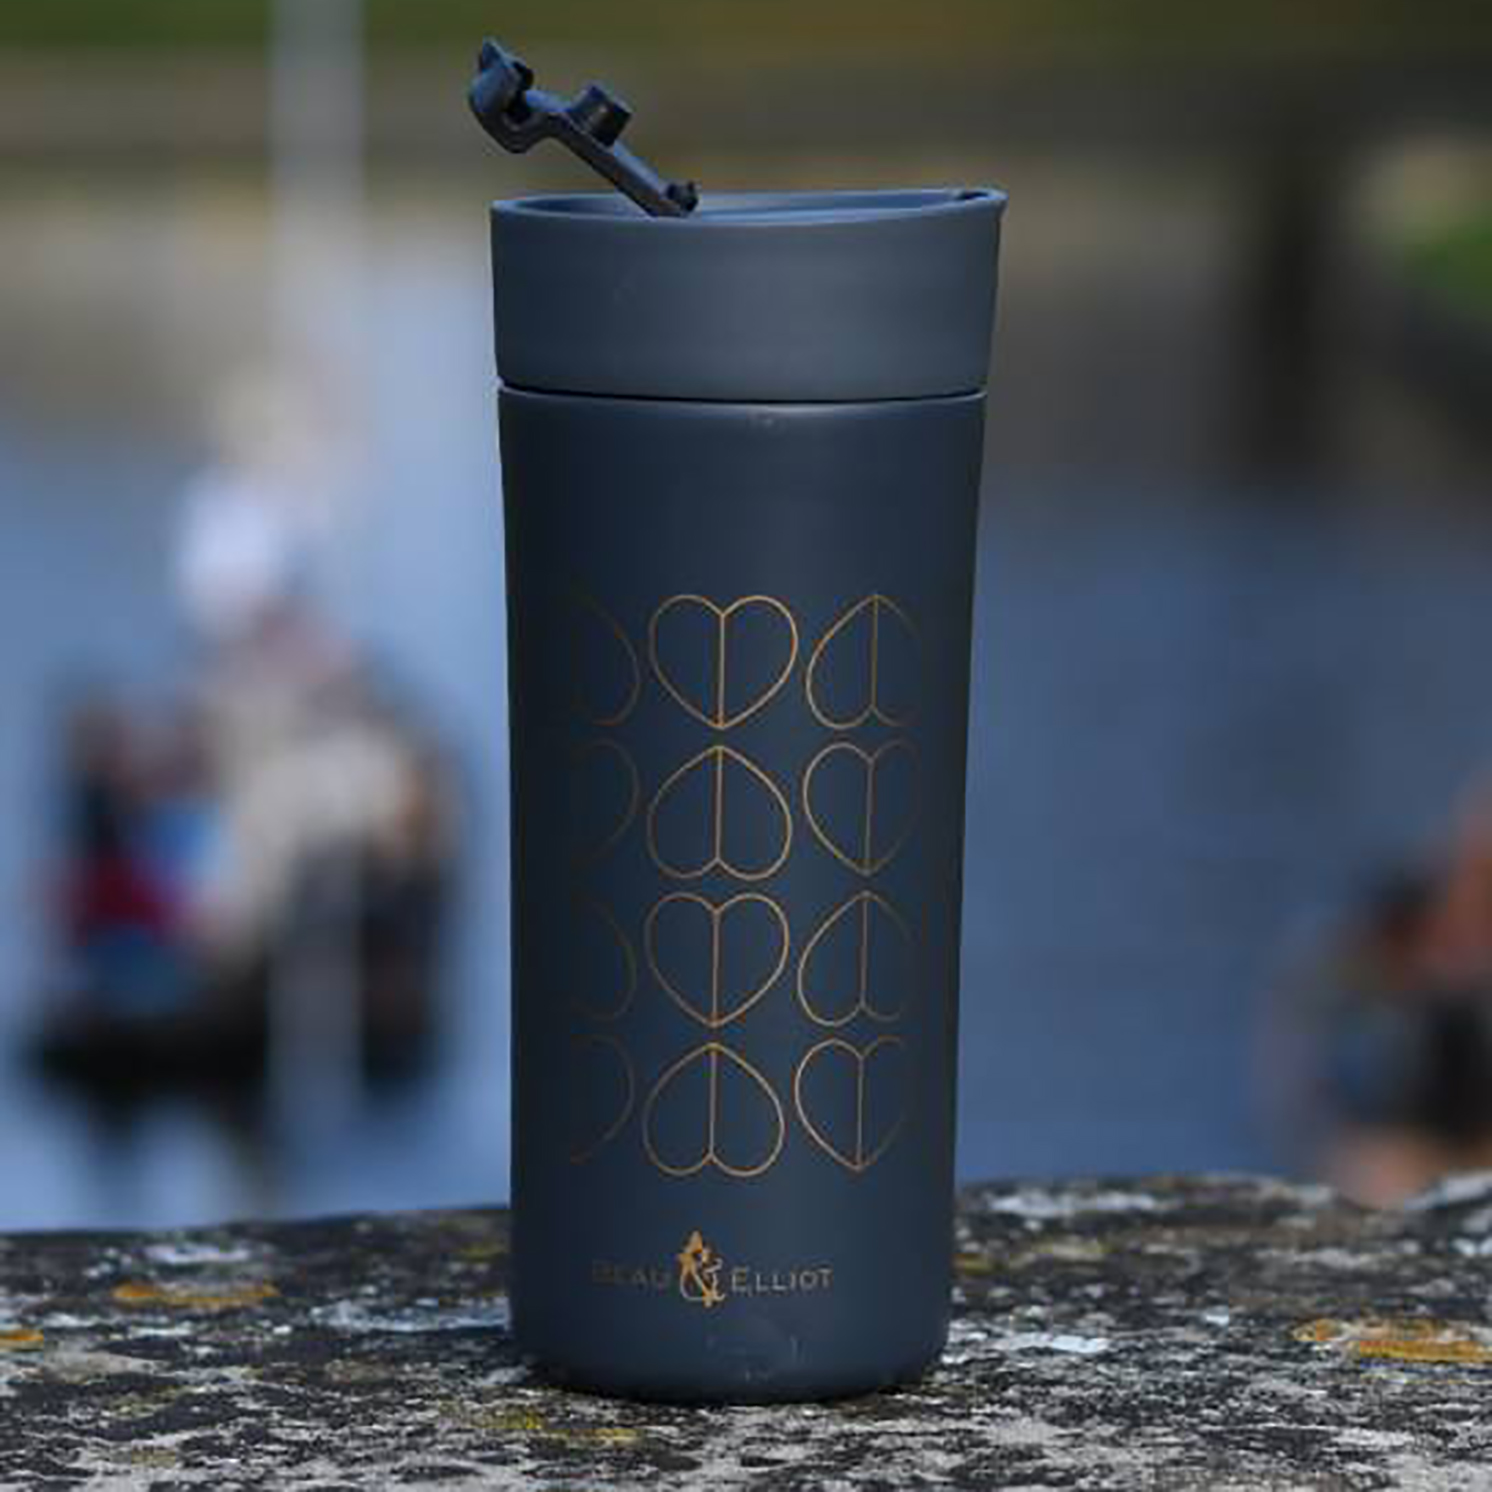 Beau & Elliot – Dove Grey Vacuum Insulated Stainless Steel Grande Travel Mug